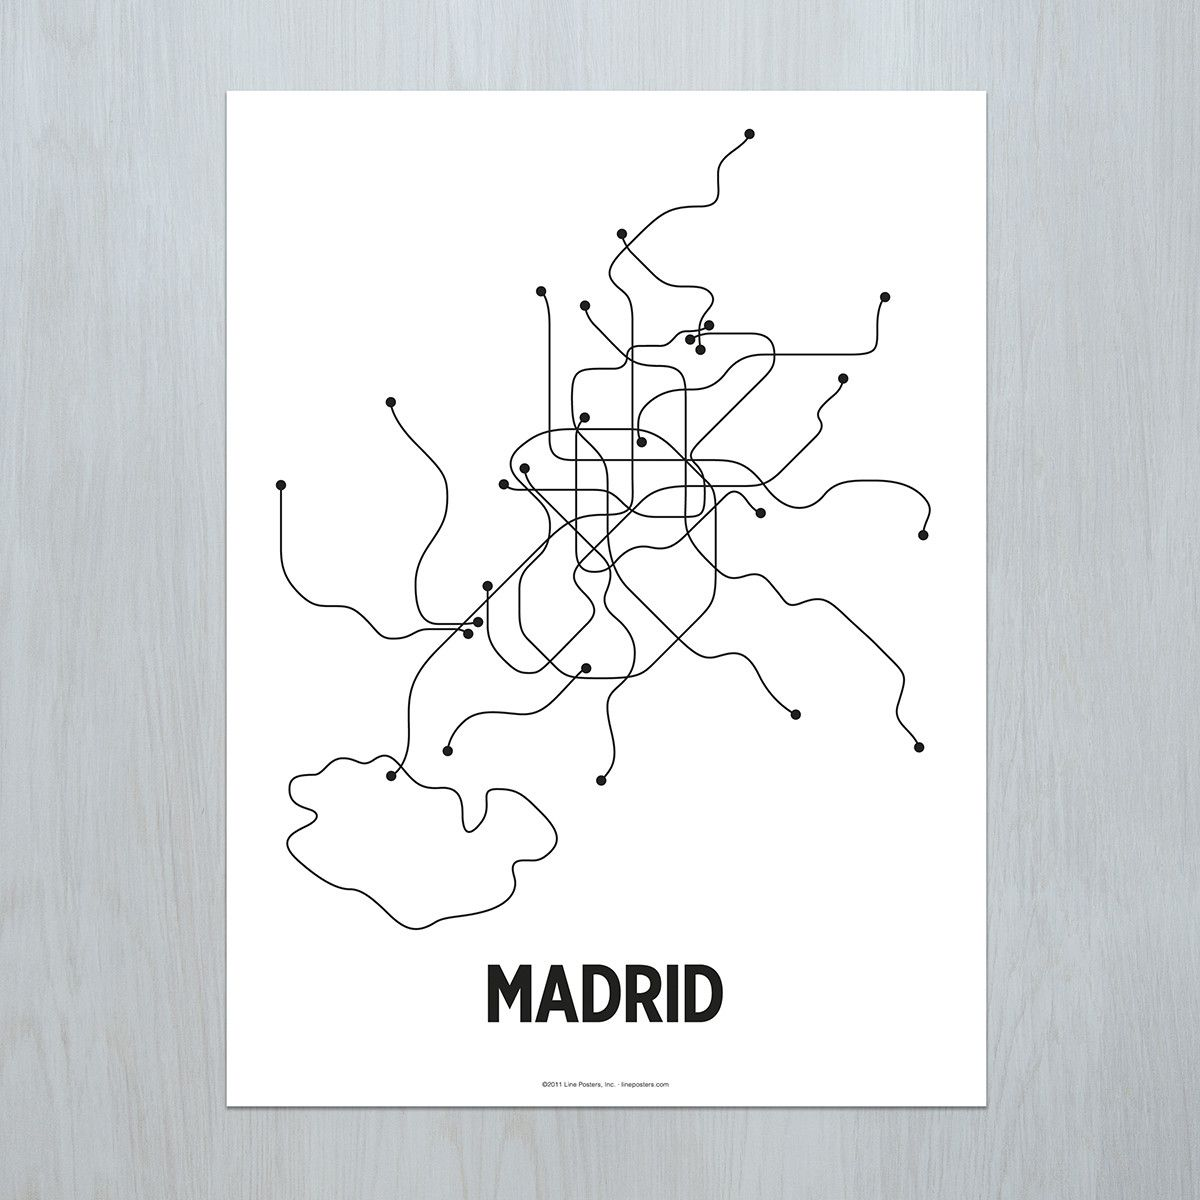 A modern graphic interpretation of the Madrid metro system. Original artwork based on the complete metro map. Standard size for easy and affordable framing. Available as a black & white lithograph or color screen print. Made in Brooklyn, NY. PLEASE NOTE: Orders typically process in 1-3 business days. Those with finishing options may take 5-7 business days.